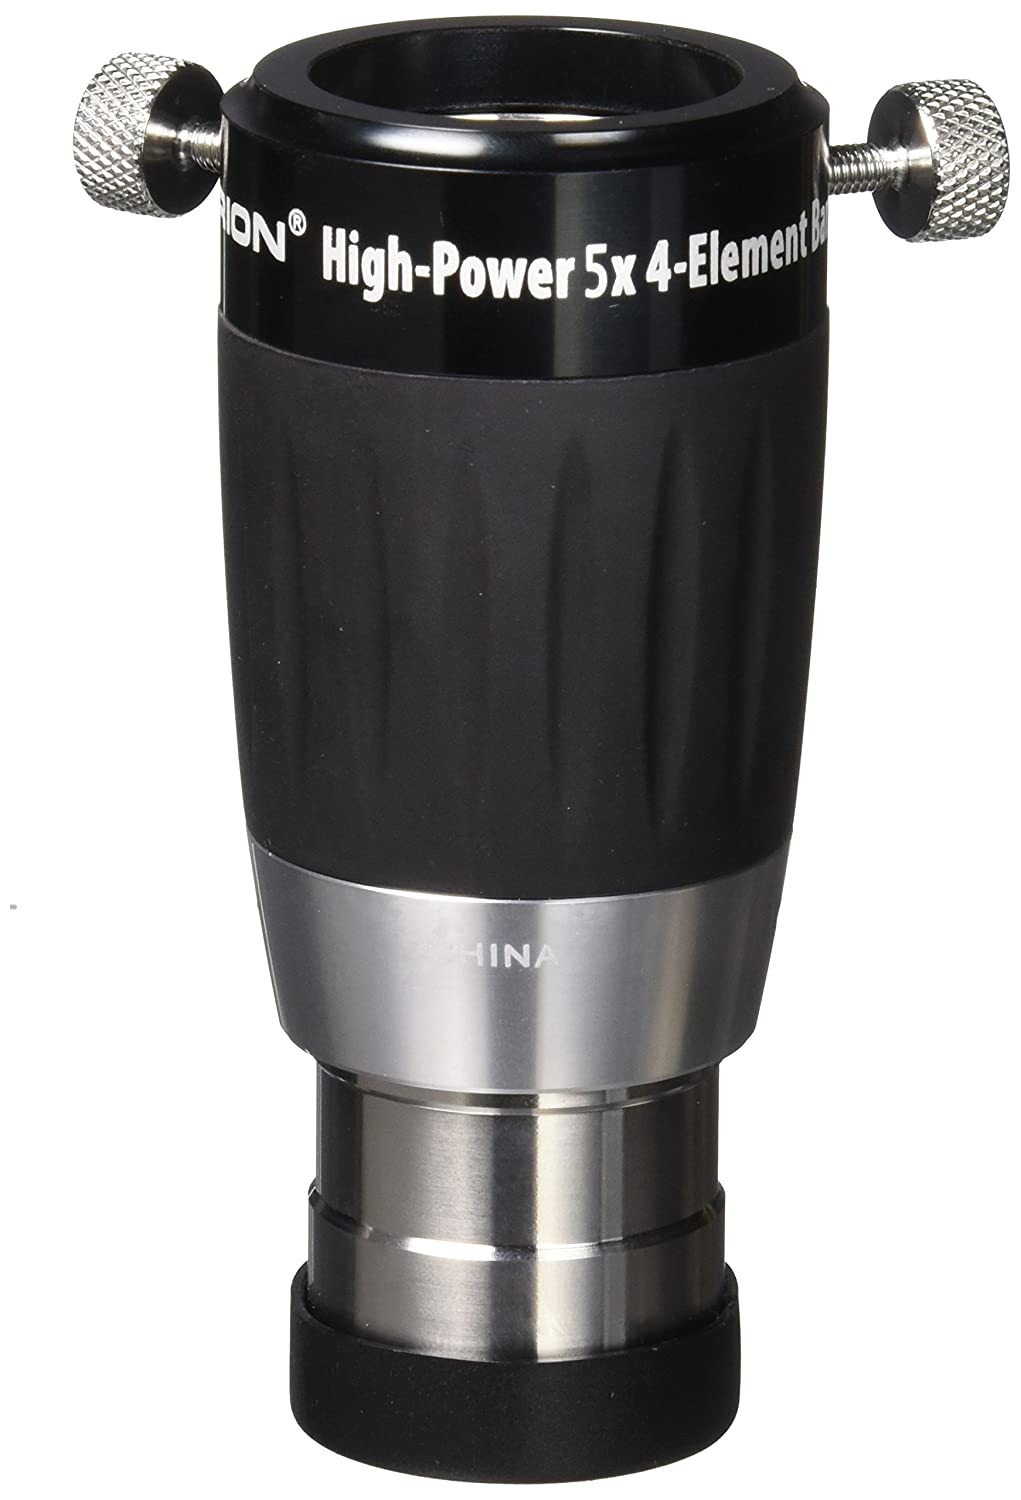 Orion 8715 High-Power 1.25-Inch 5x 4-Element Barlow Lens